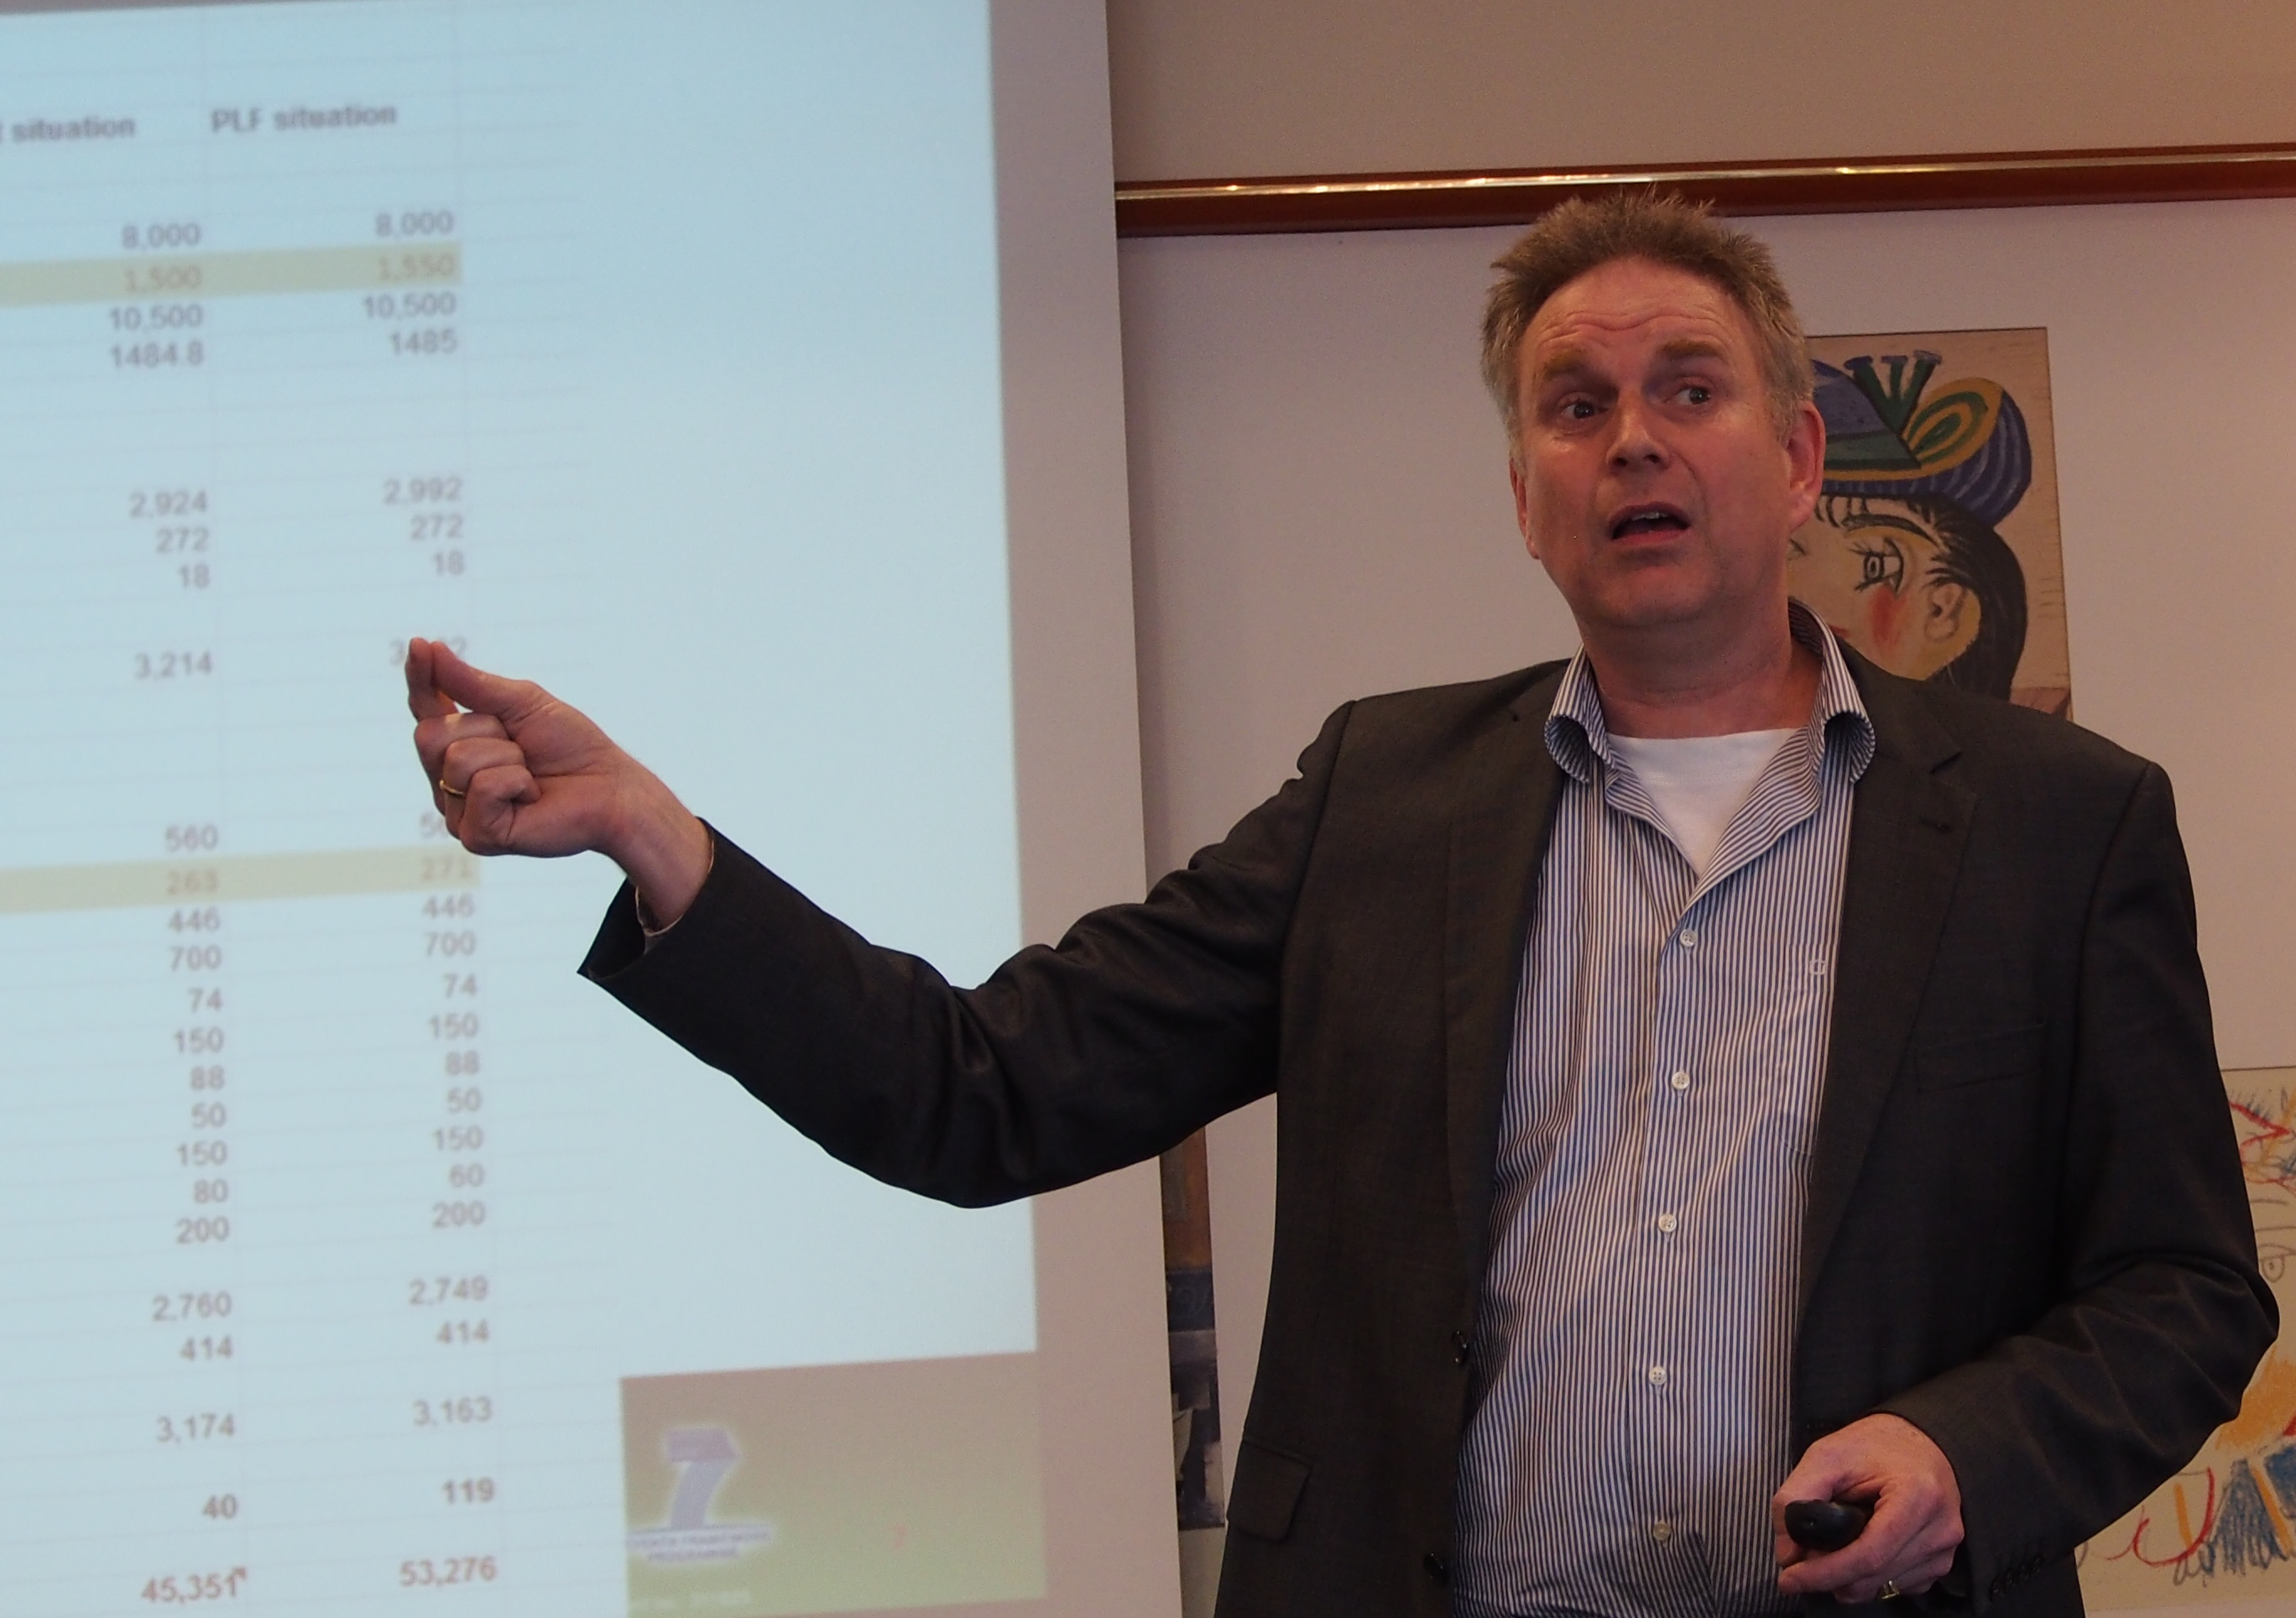 Henk Hogeveen presented a fist version of a calculation for the PLF-relevant socio-economic indicators.